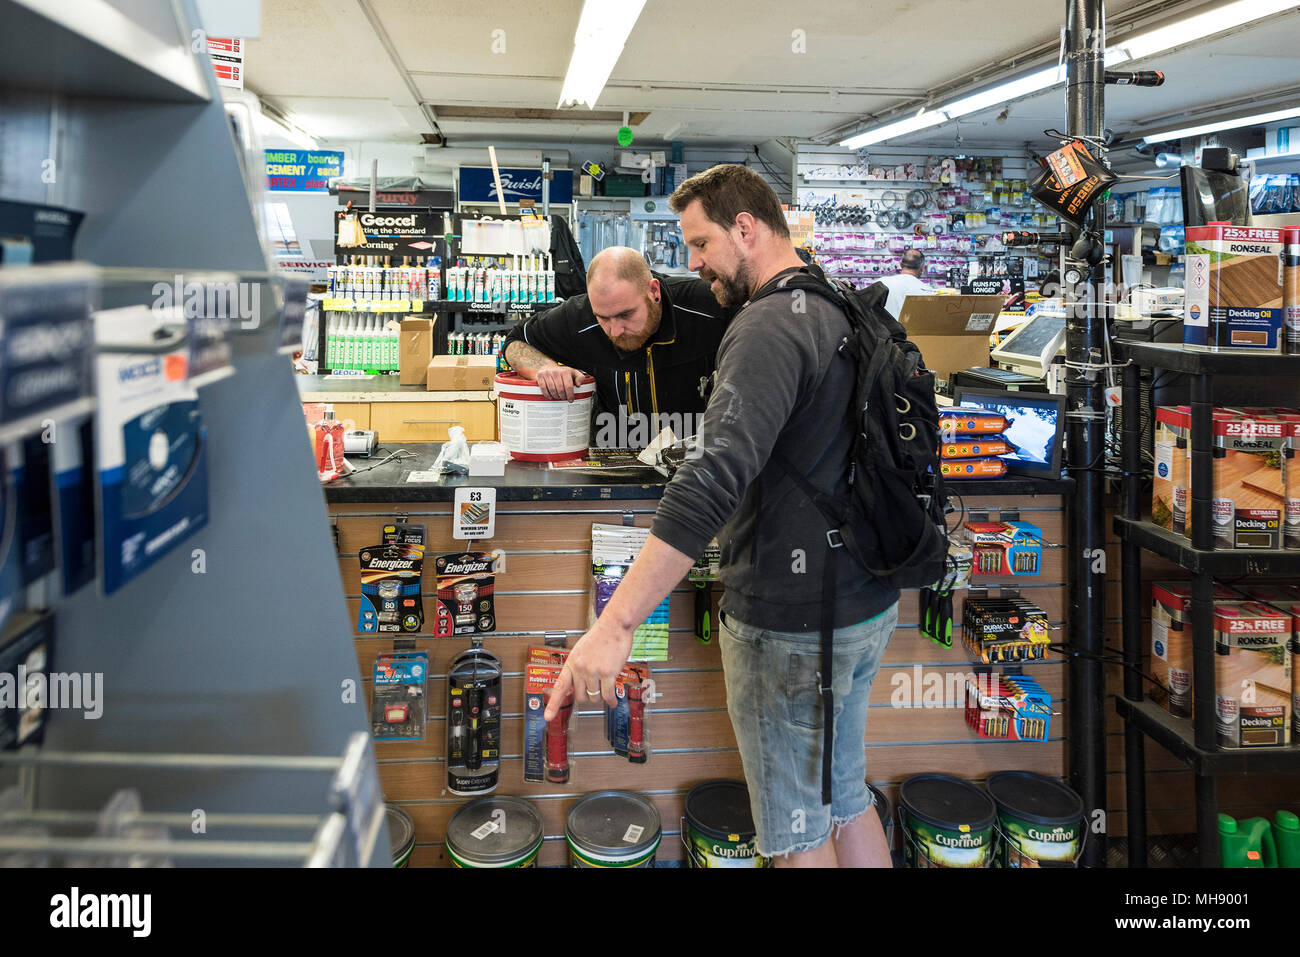 A customer asking a question in a DIY shop. - Stock Image